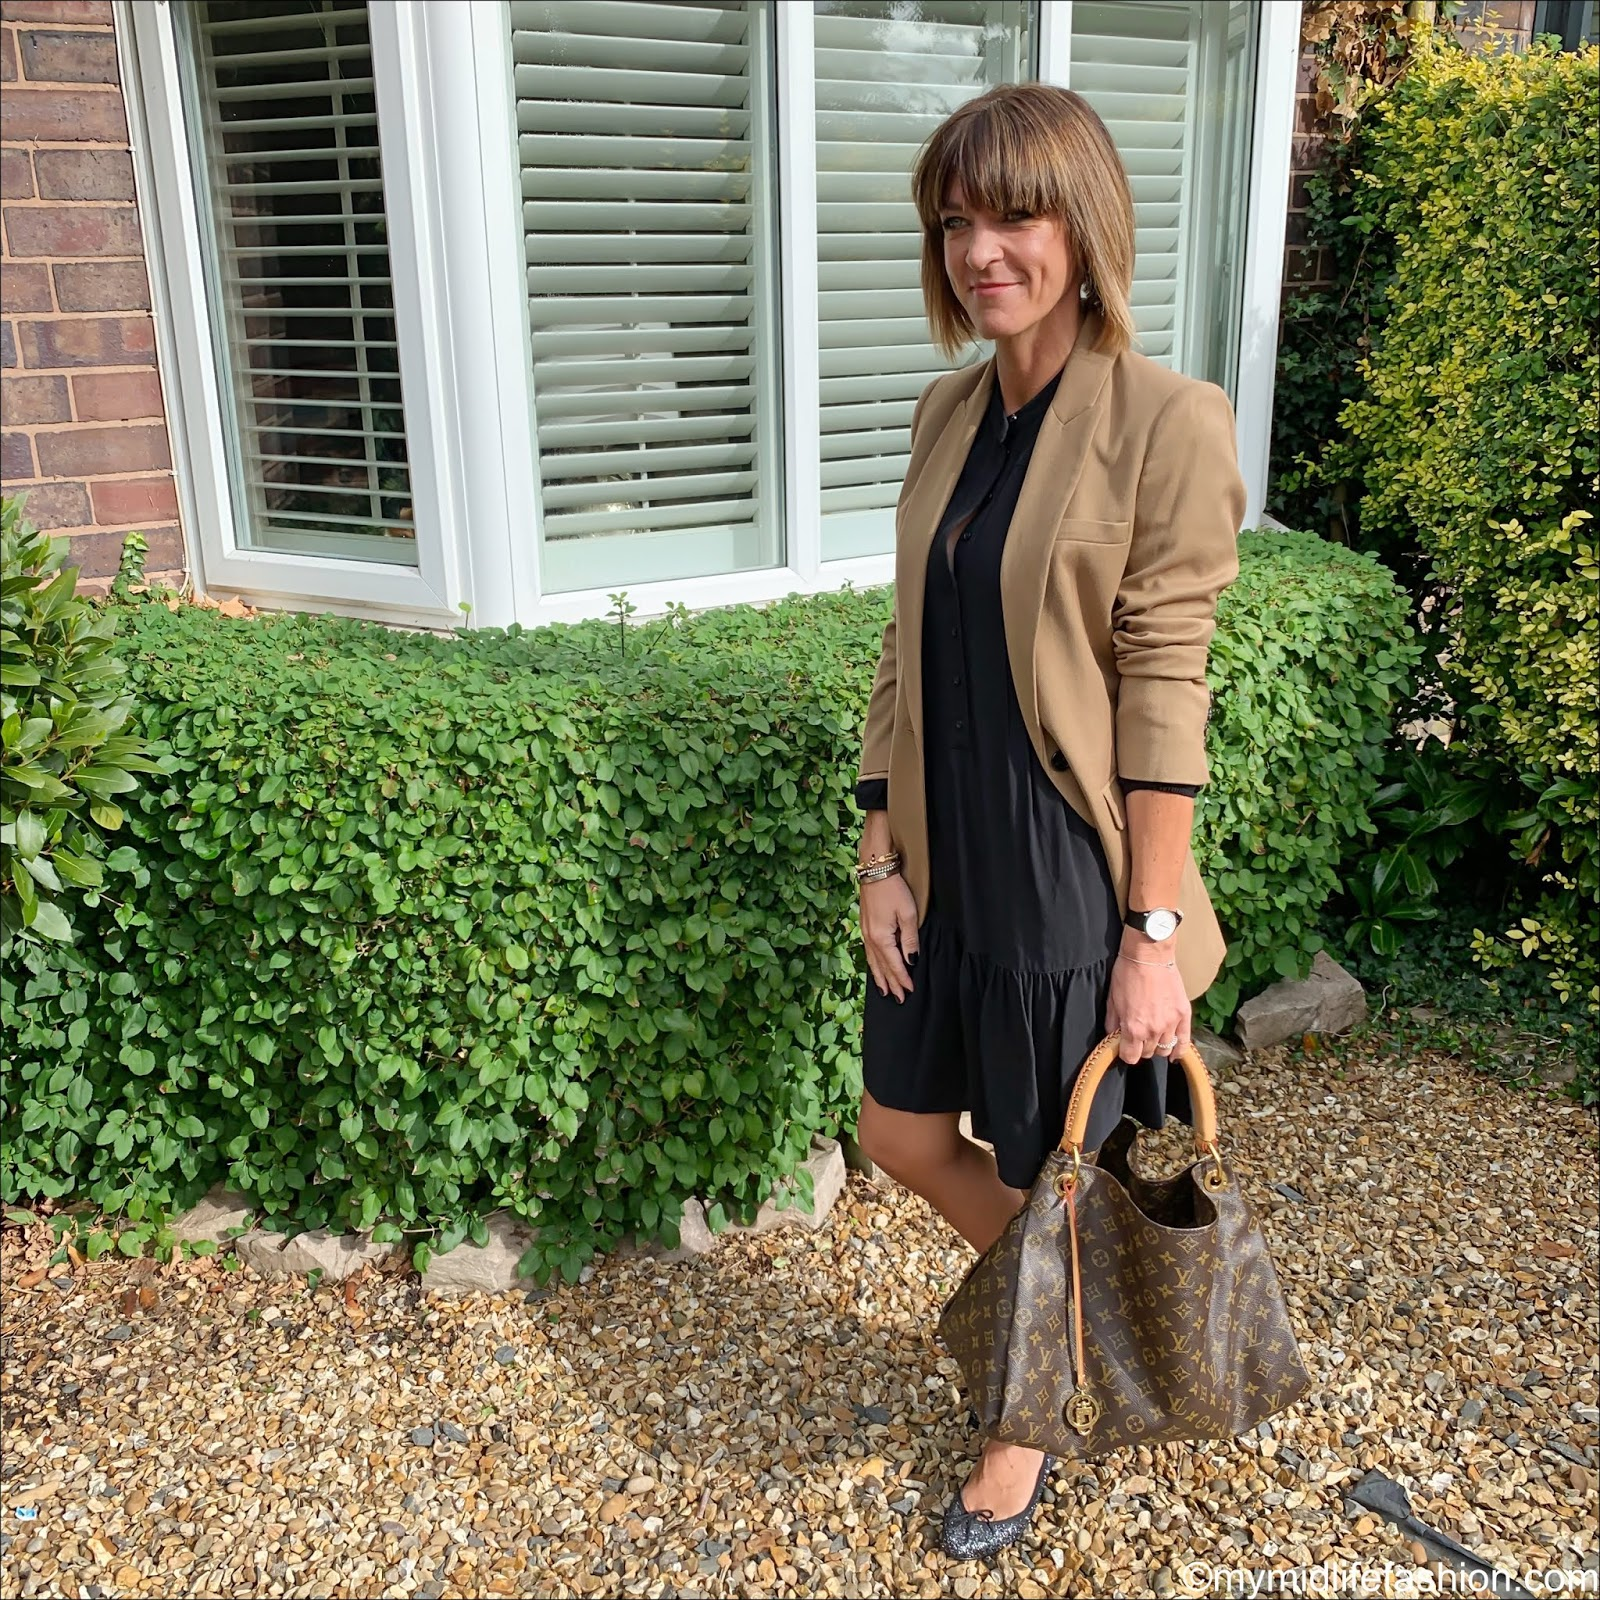 my midlife fashion, marks and Spencer single breasted blazer, marks and Spencer pin tuck relaxed mini dress, Louis Vuitton bag, French sole glitter ballet pumps